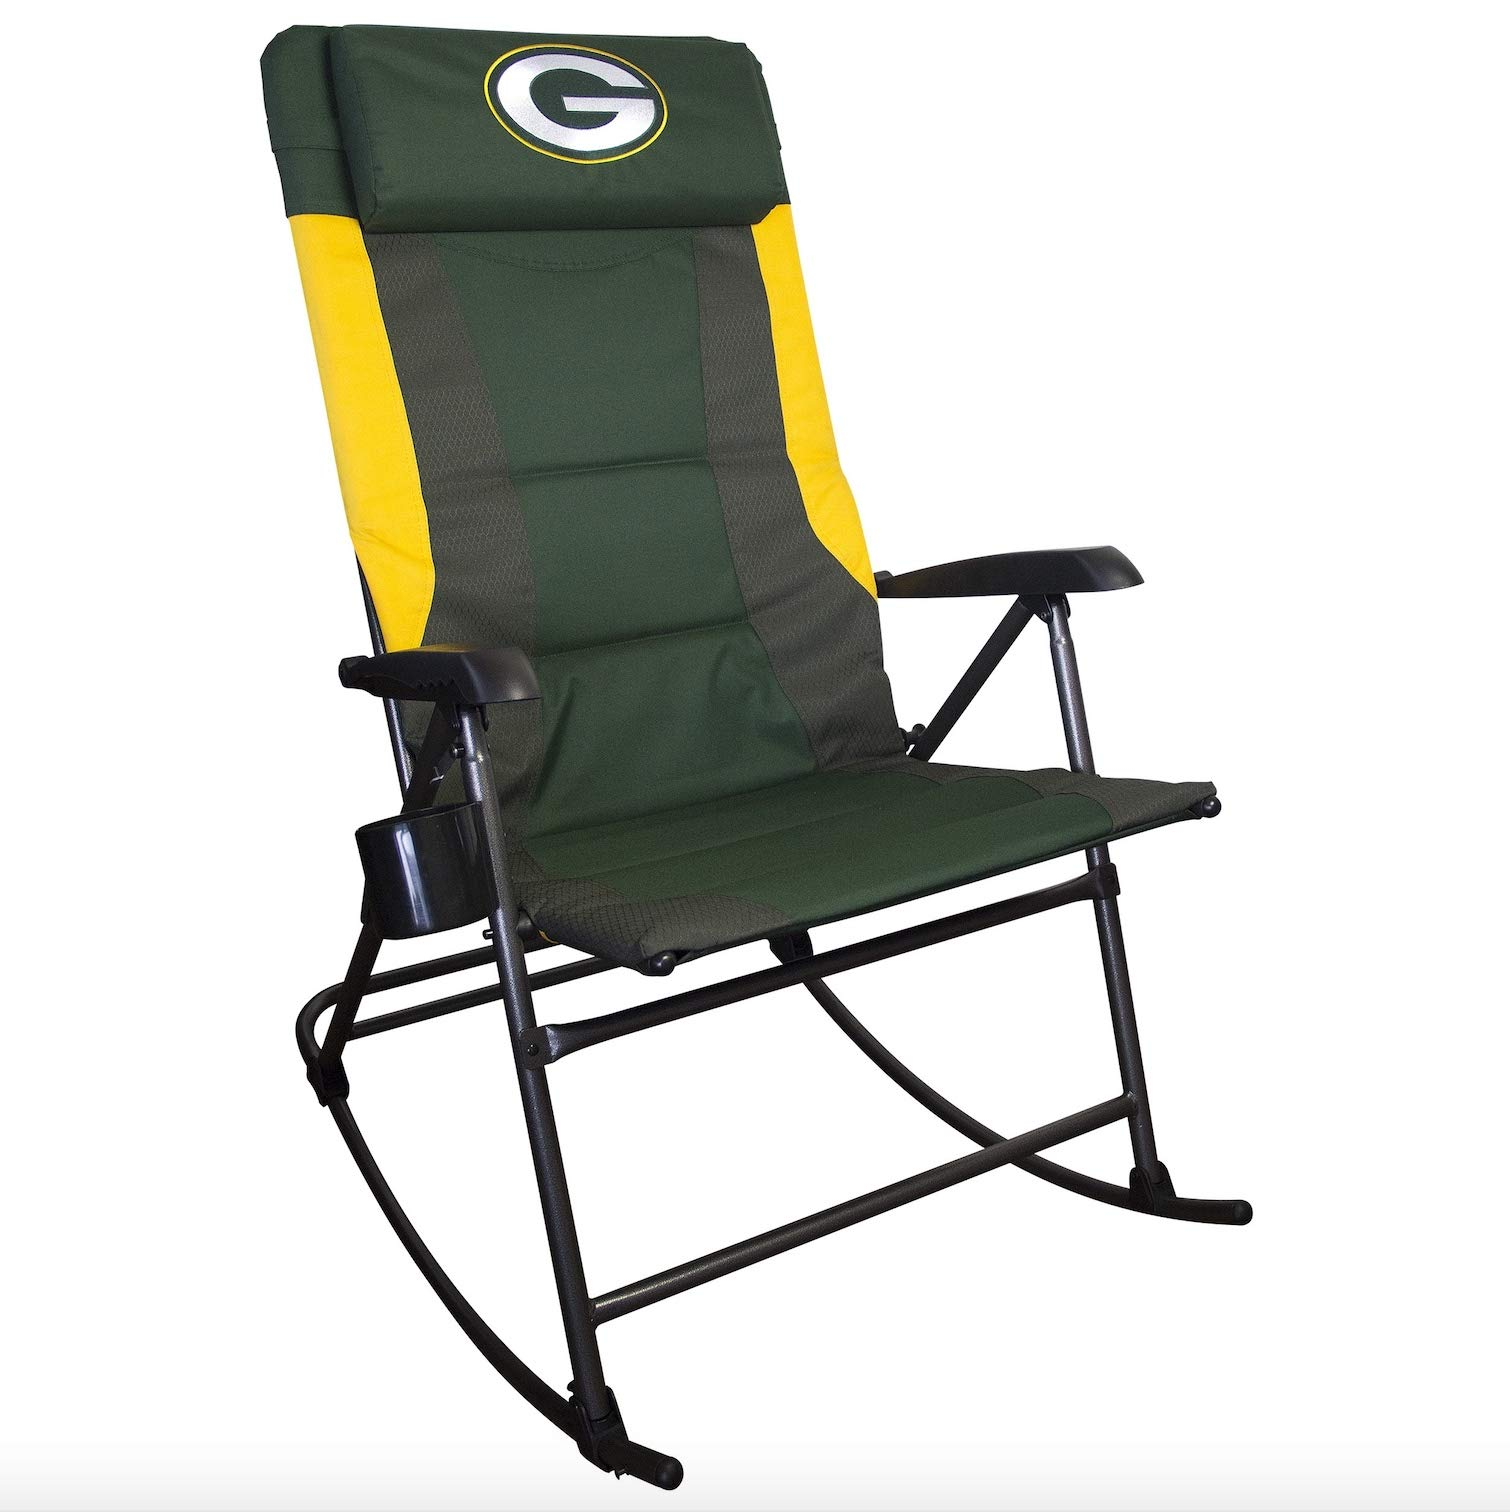 Rawlings NFL Green Bay Packers Mens Large Rocker Chair, Green Large